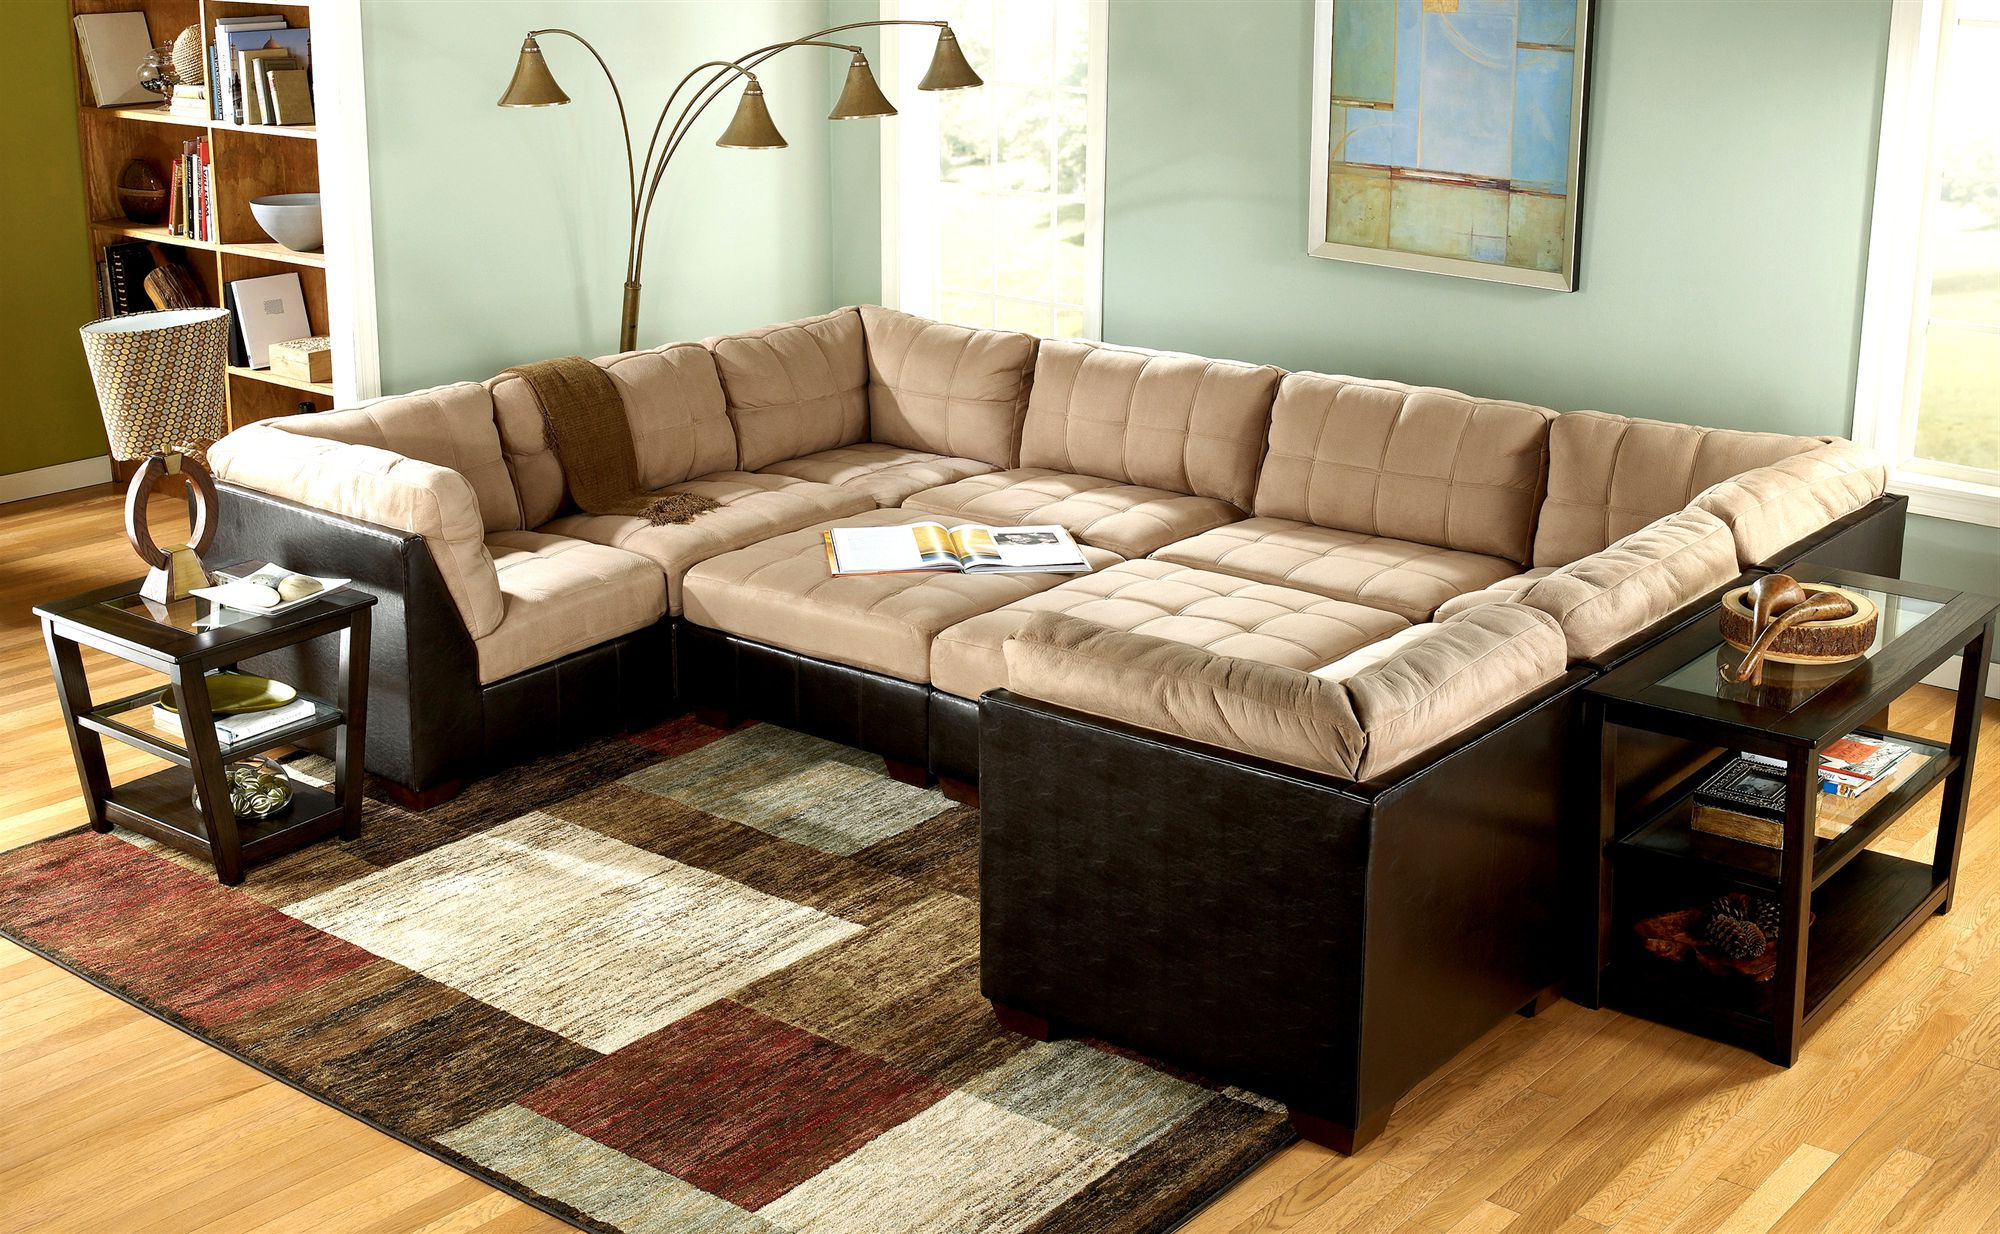 living sofa design modular sectional leather room ideas with sectionals for small